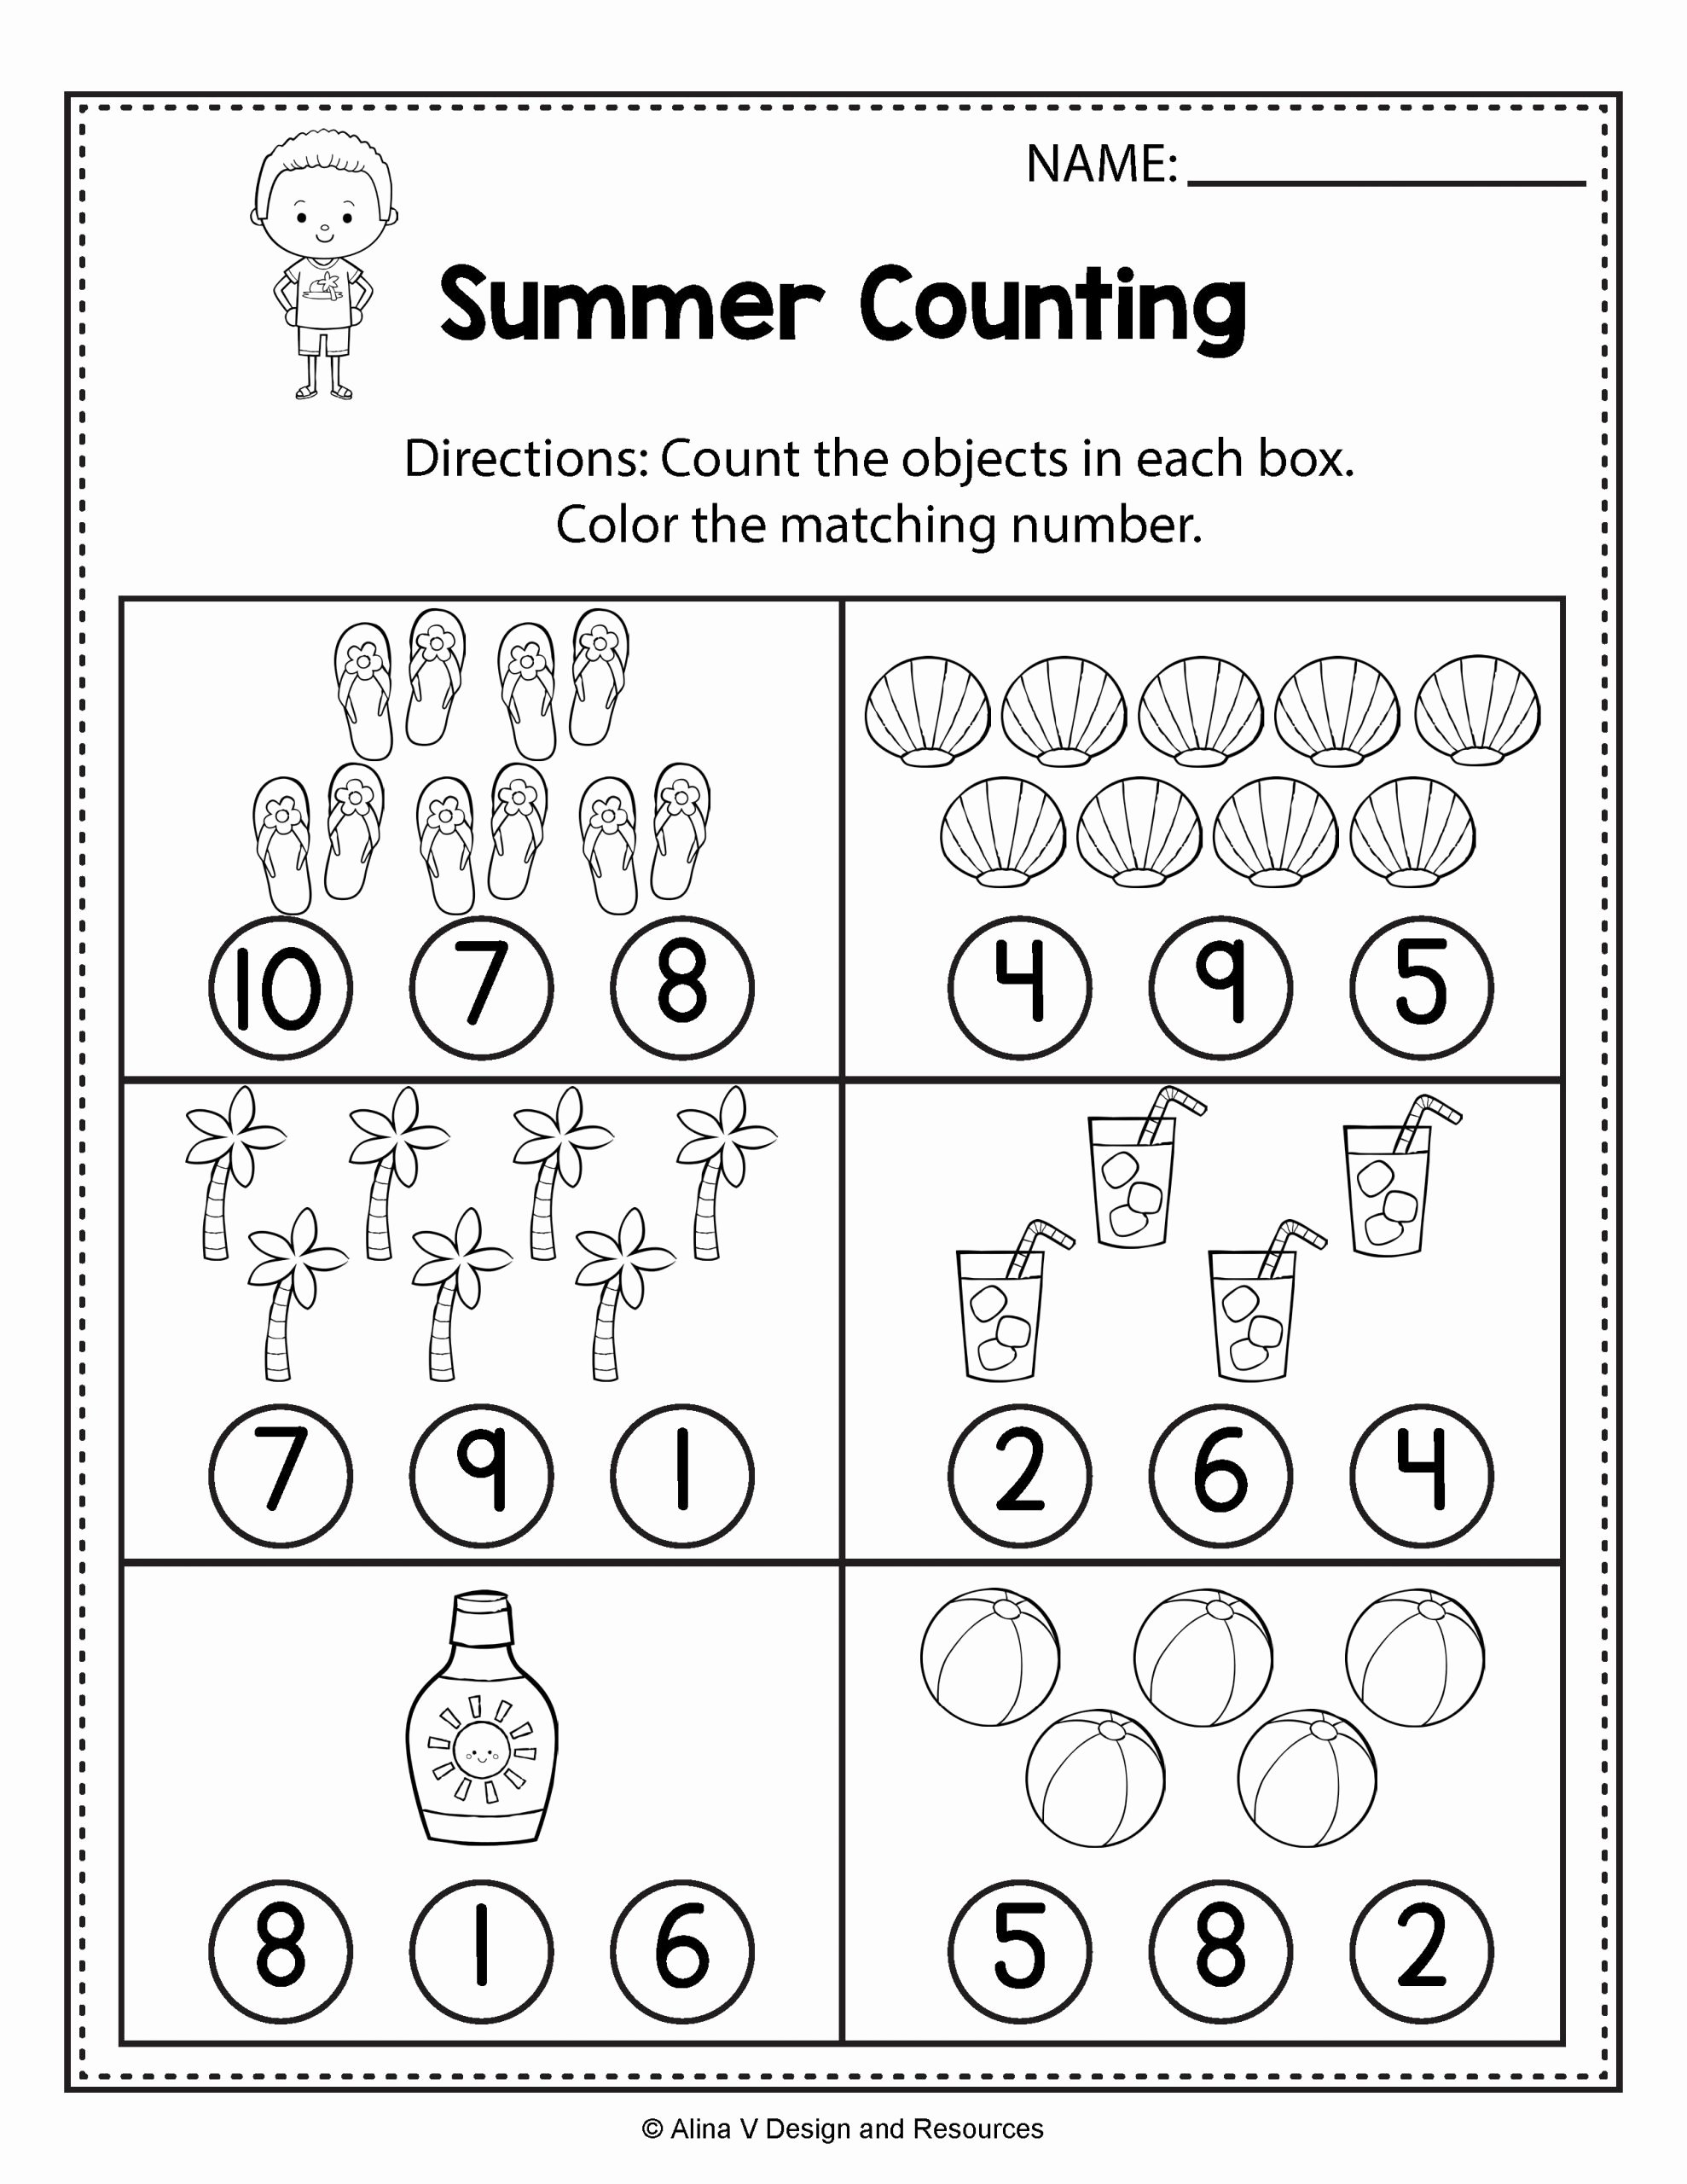 Number Matching Worksheets for Preschoolers Free Math Worksheet Number Worksheets for Preschool Kids Writing